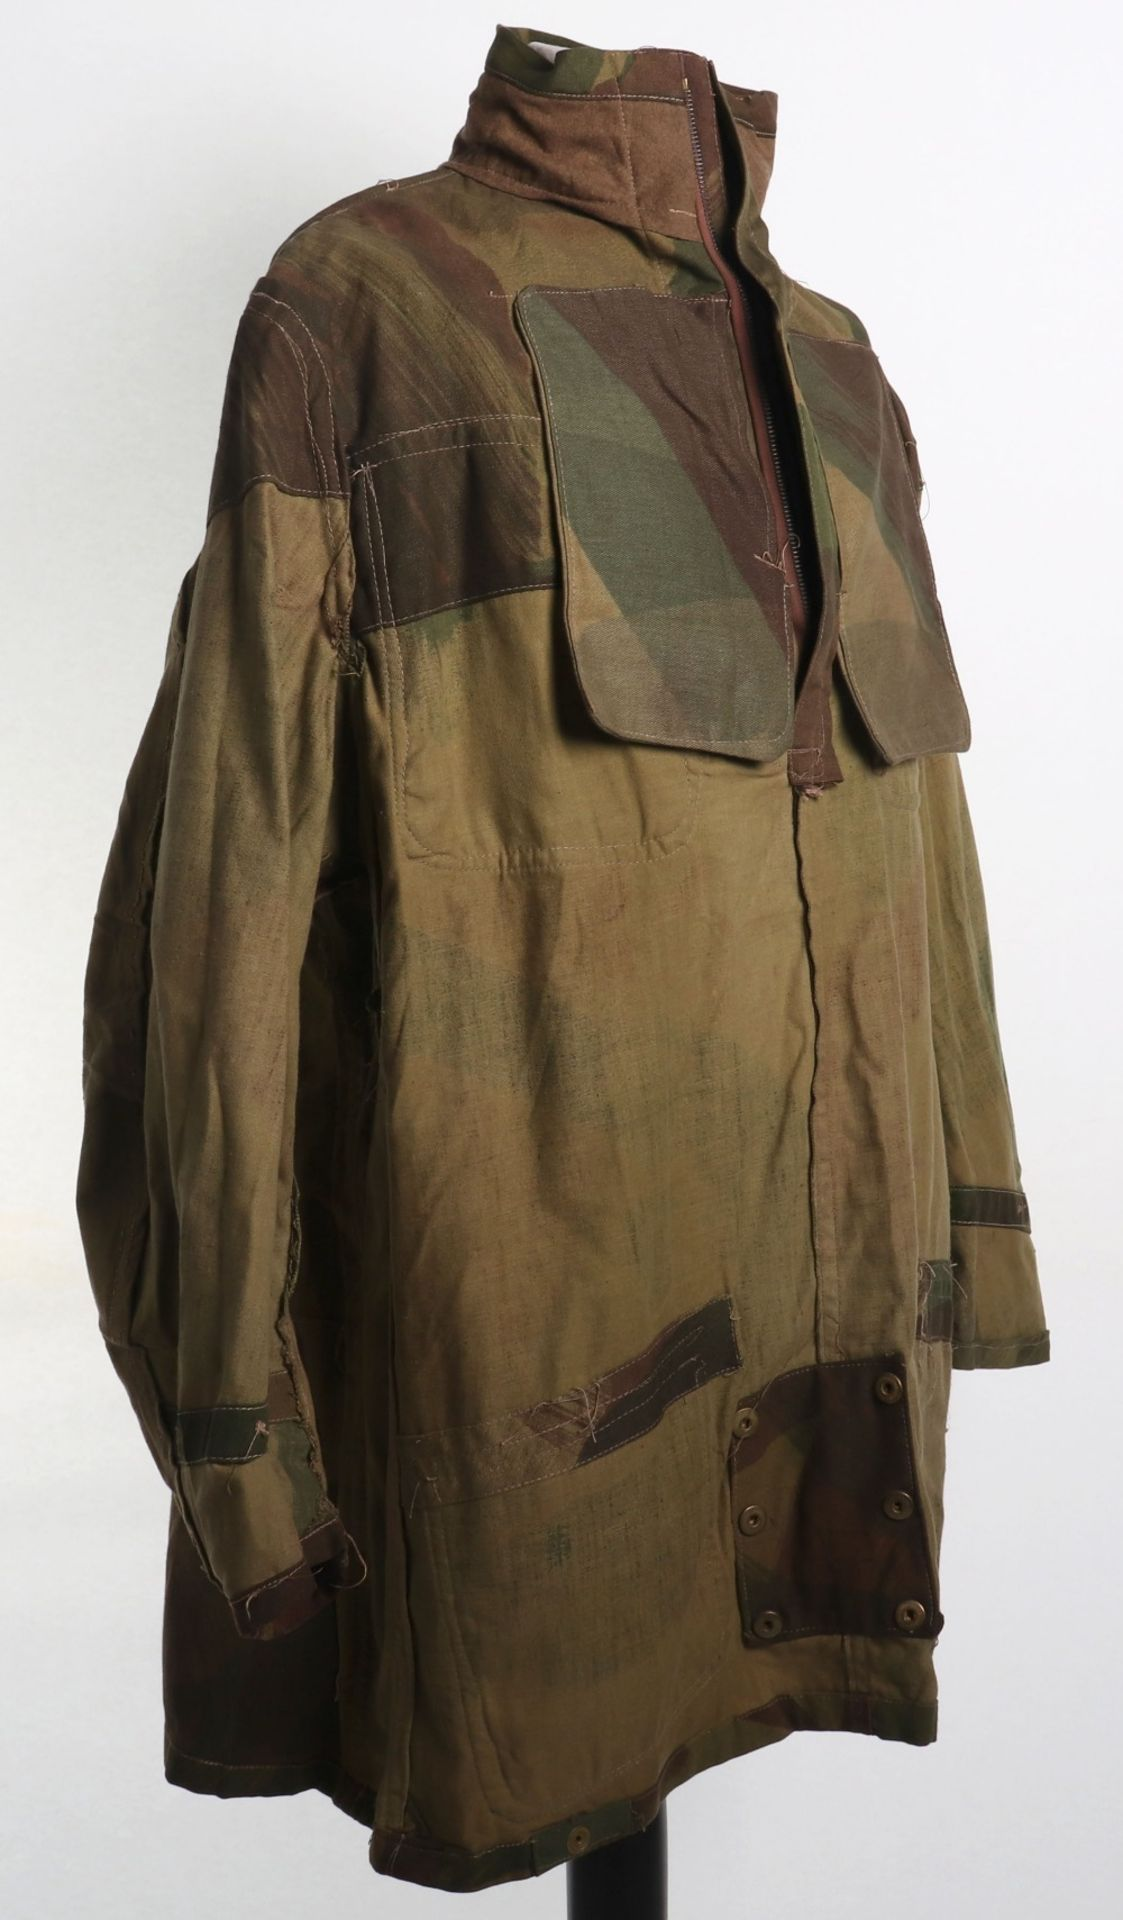 Mint Condition Large Size Airborne Forces Denison Smock - Image 13 of 17